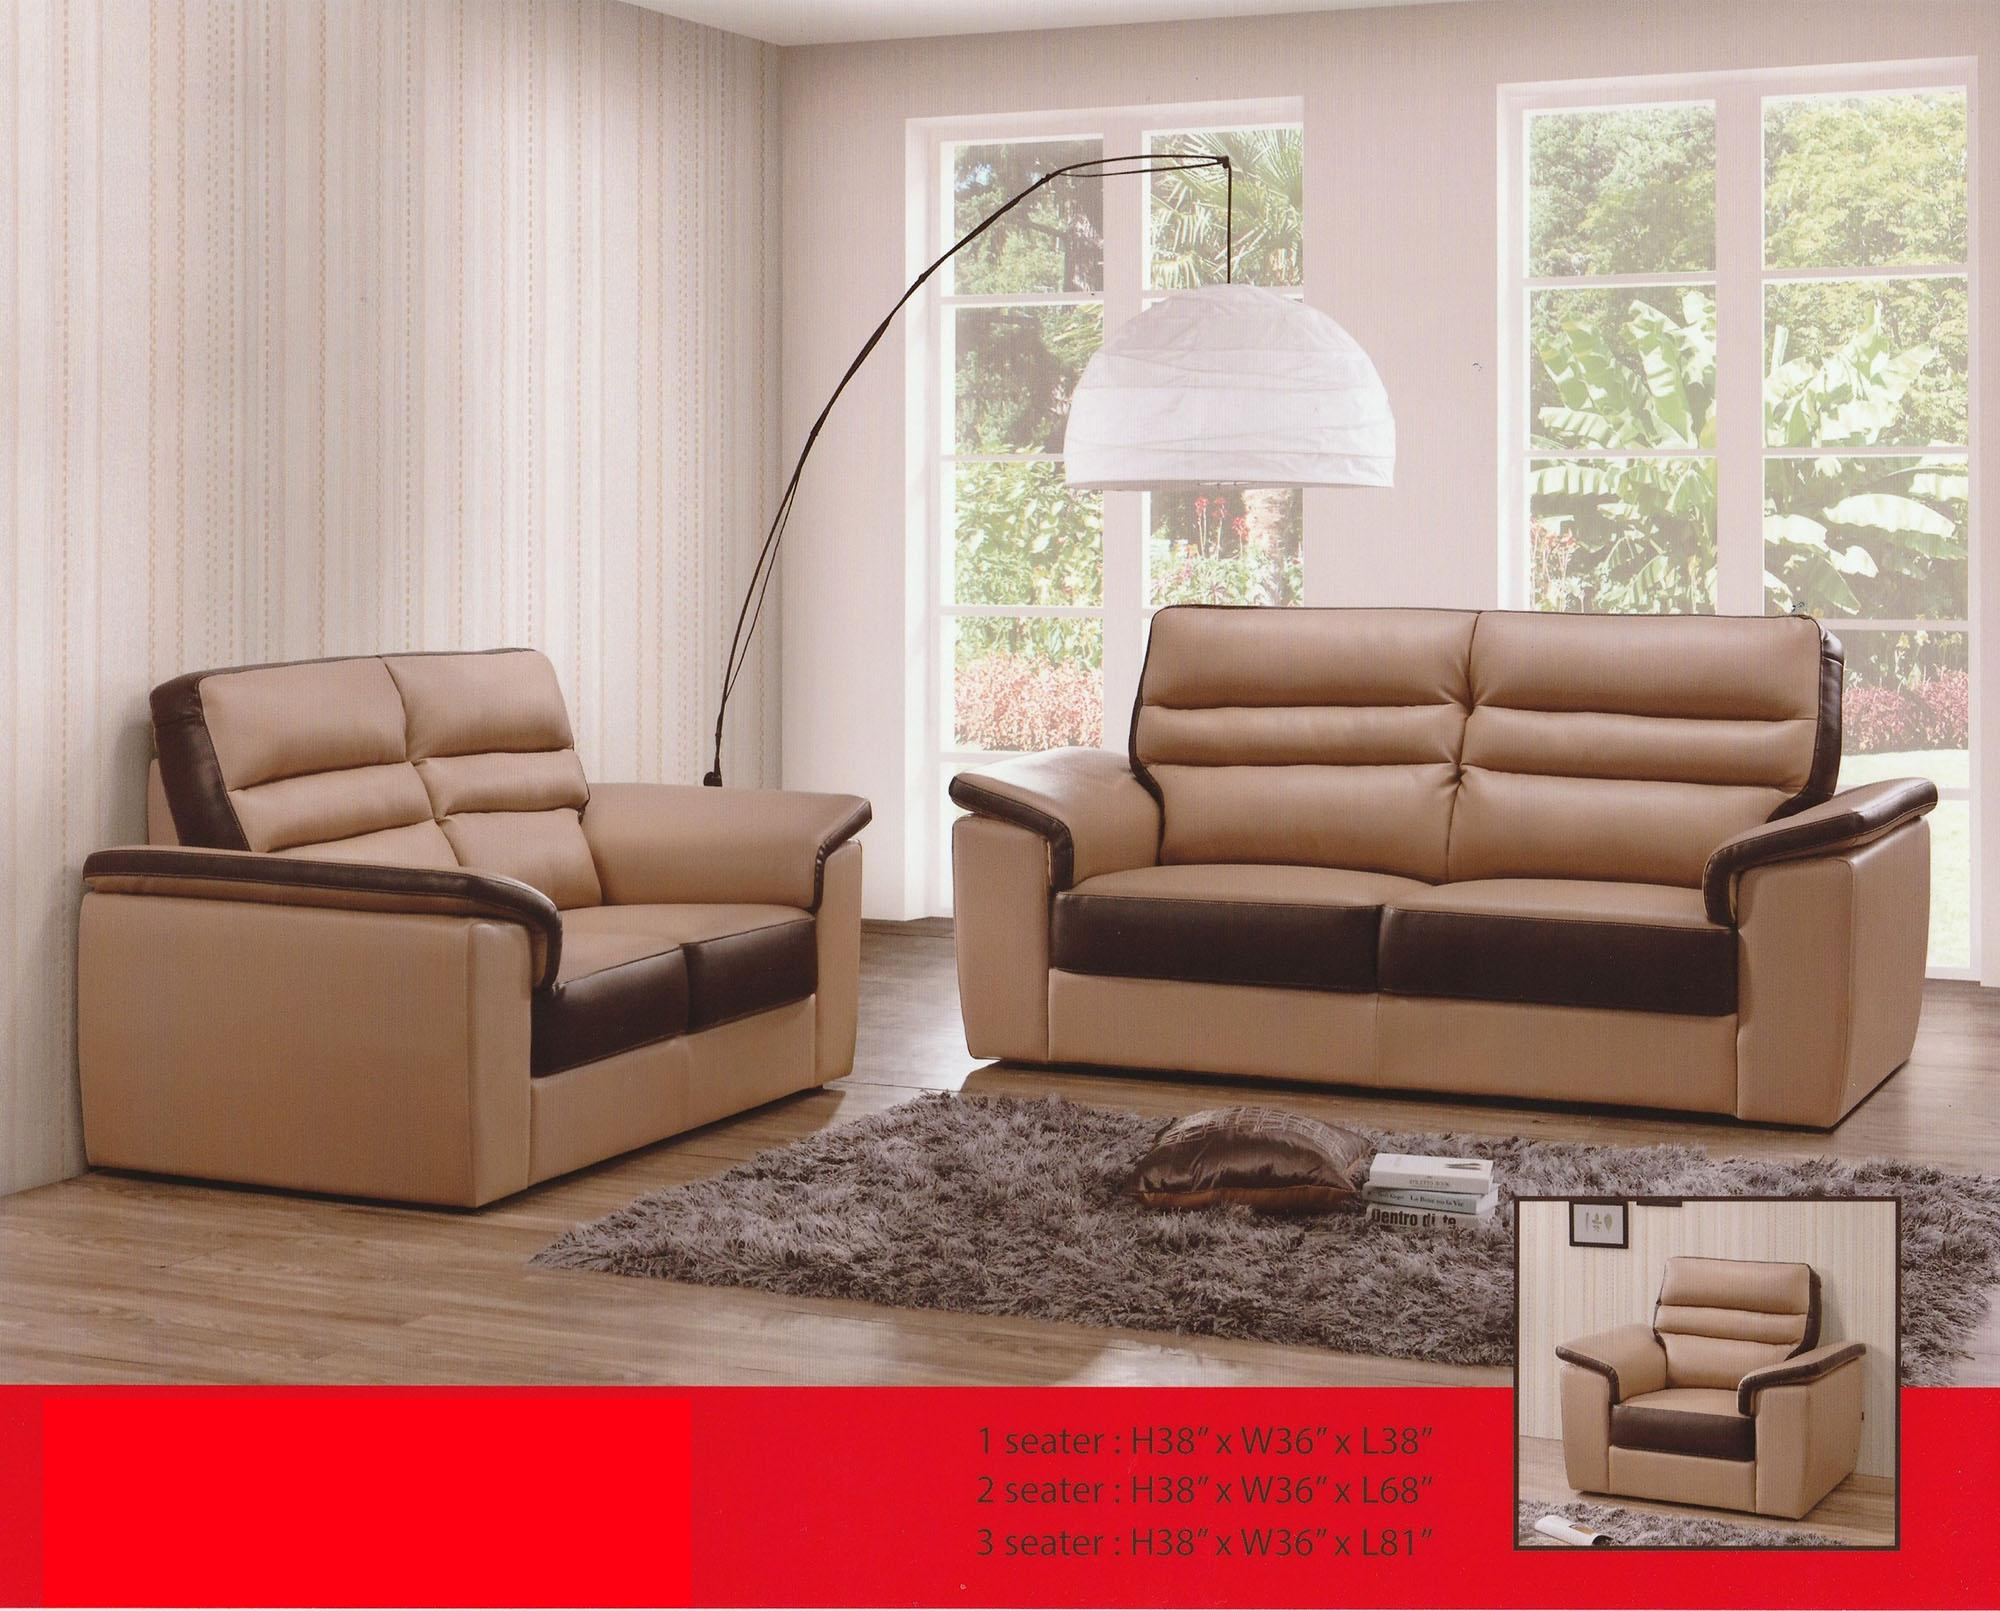 Munchen 2 Seater Fully Leather Sofa (end 5/16/2021 12:00 AM)